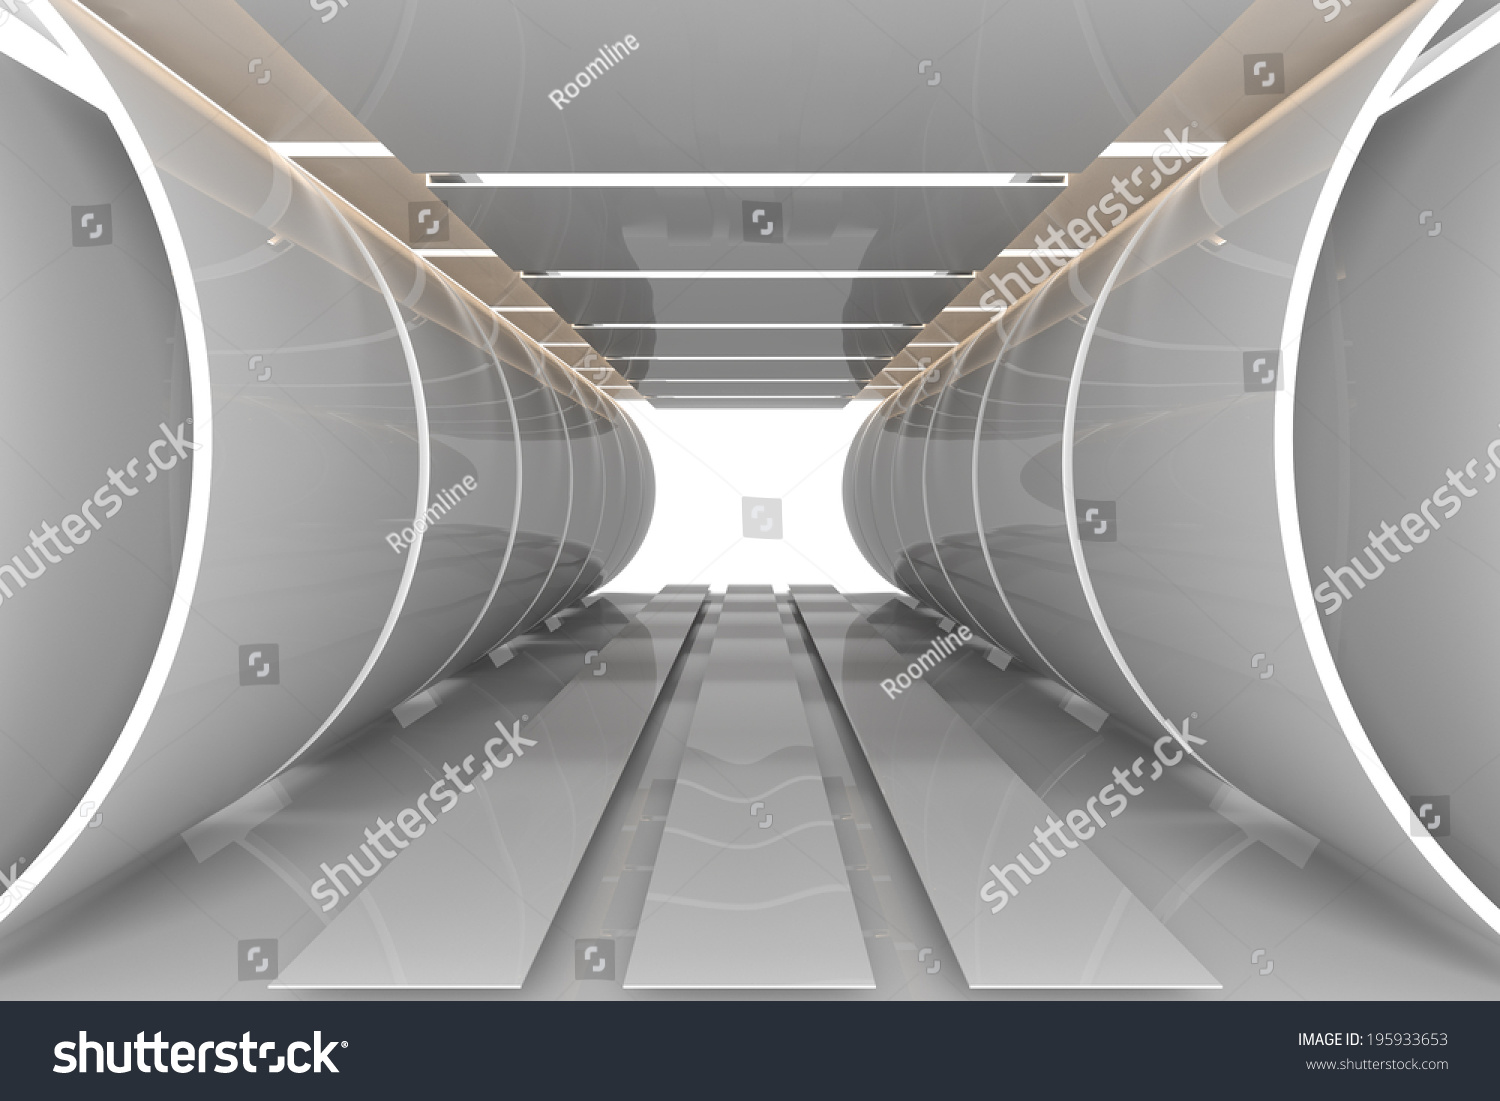 Futuristic Interior Curve Empty Room With Reflective Materials Stock